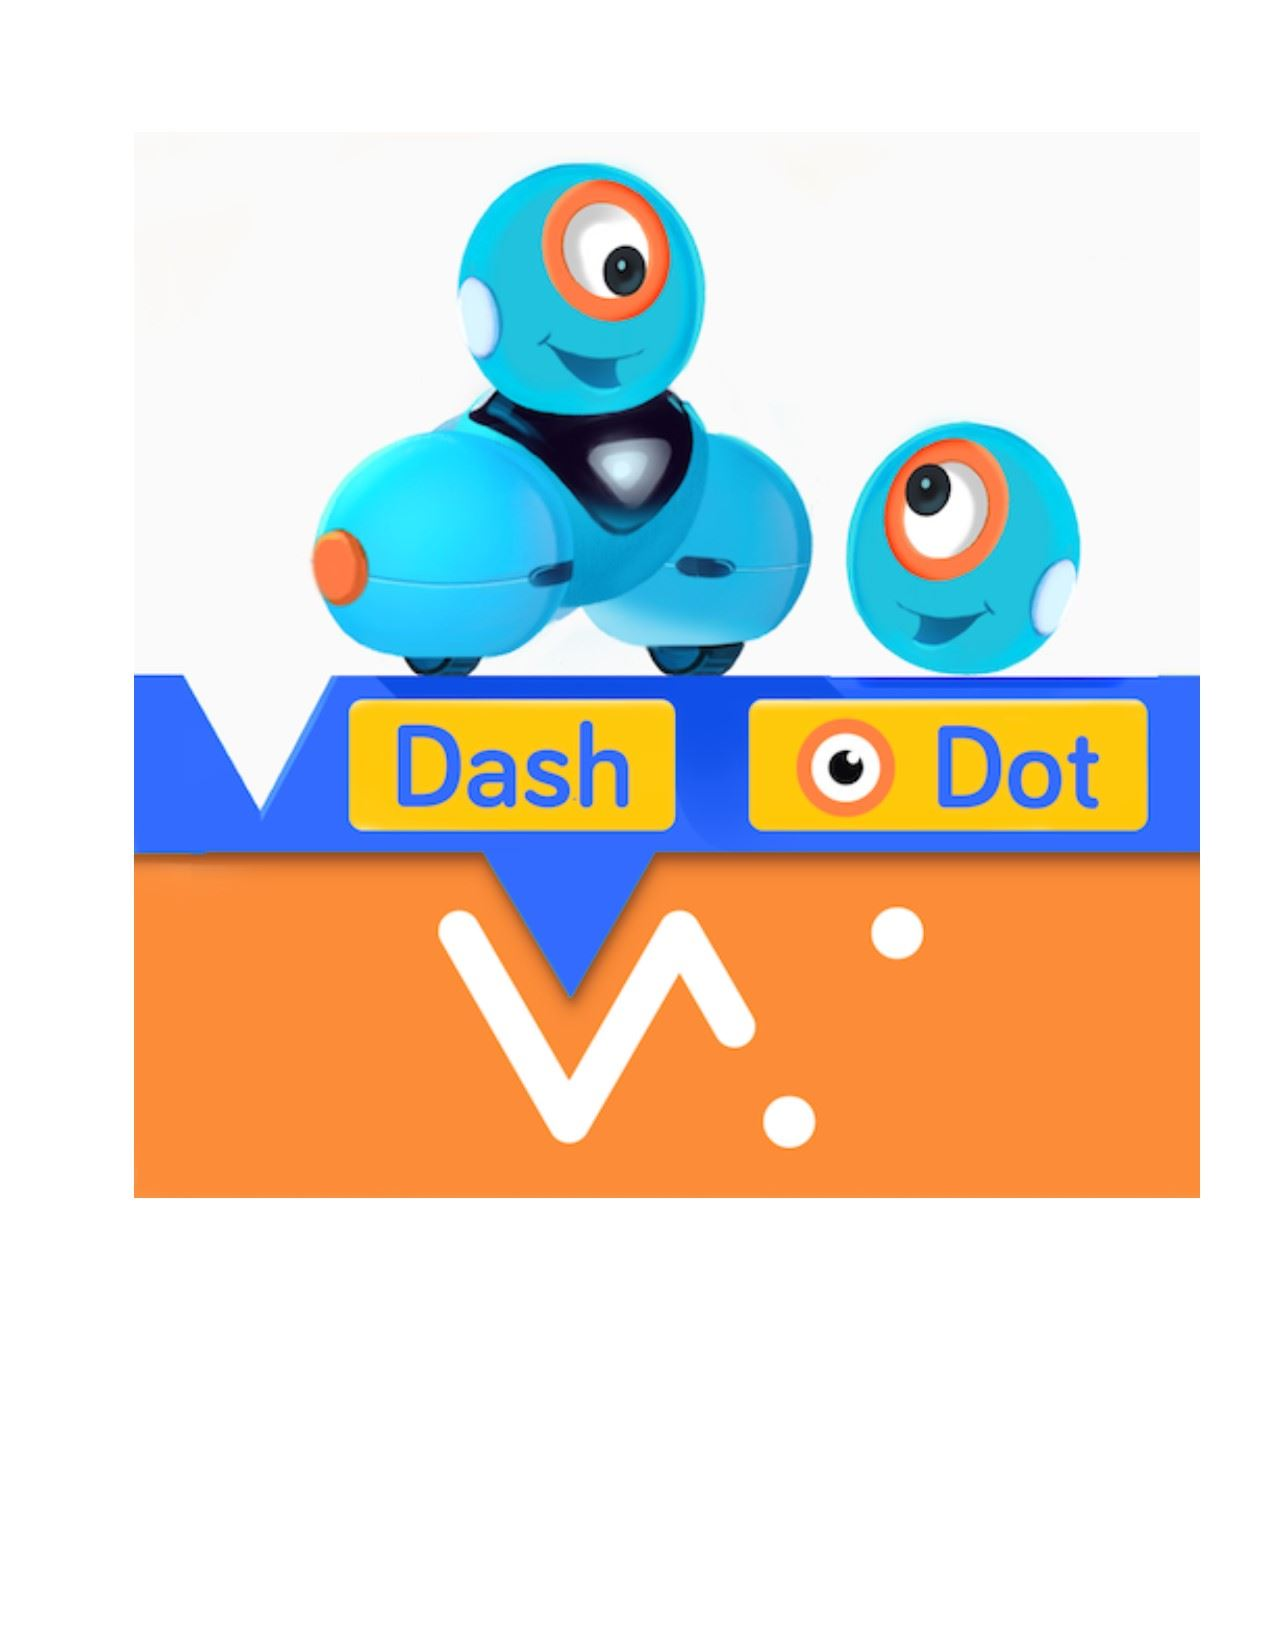 Dot and Dash